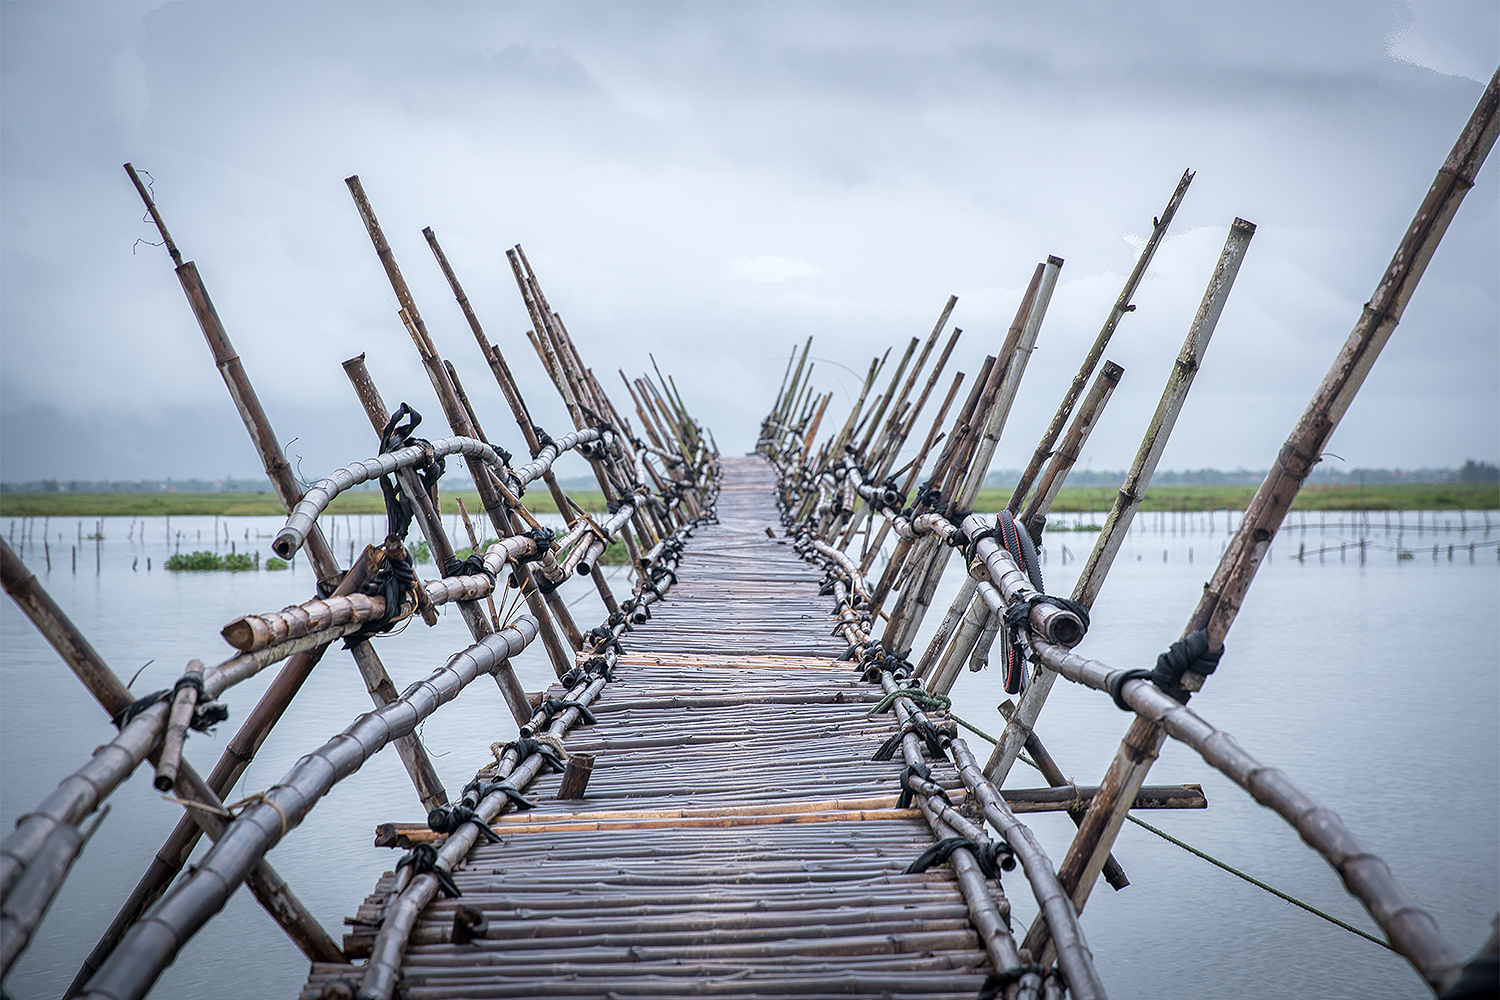 Troung Giang Bridge in Hoi An (Vietnam) ©PhotoTravelNomads